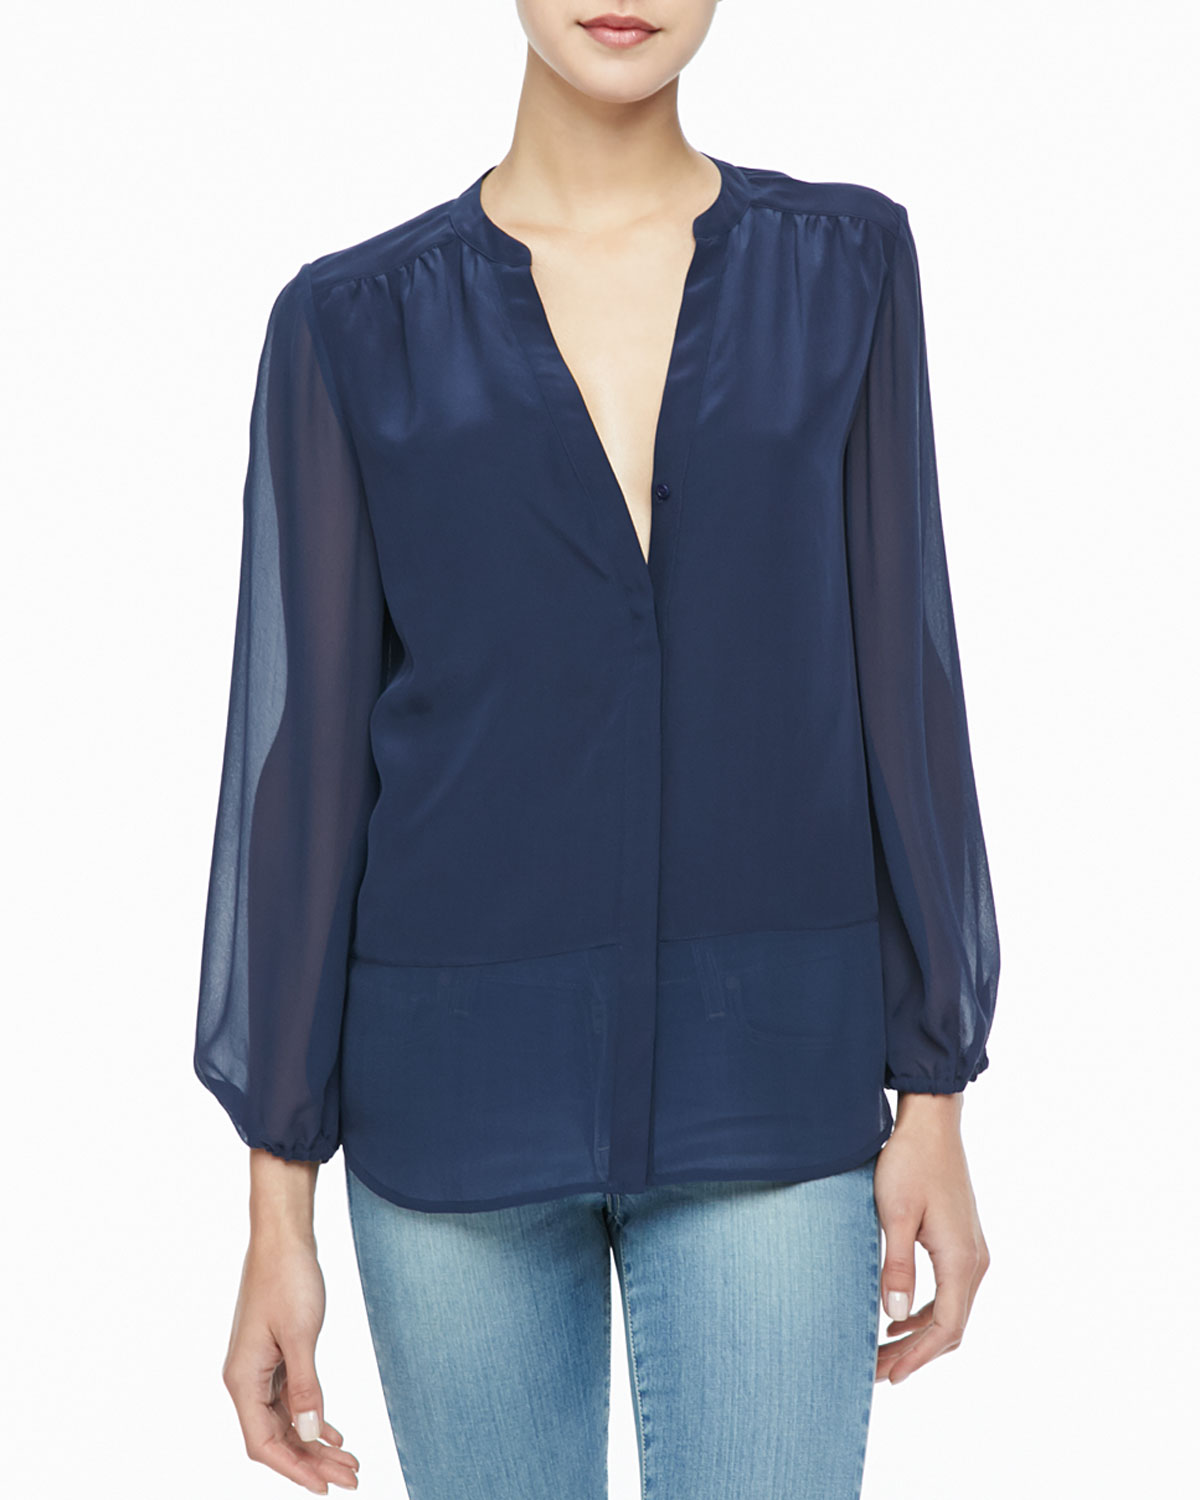 Unique Lyst - Joie Mercina Sheer Silk Blouse in Blue VV15